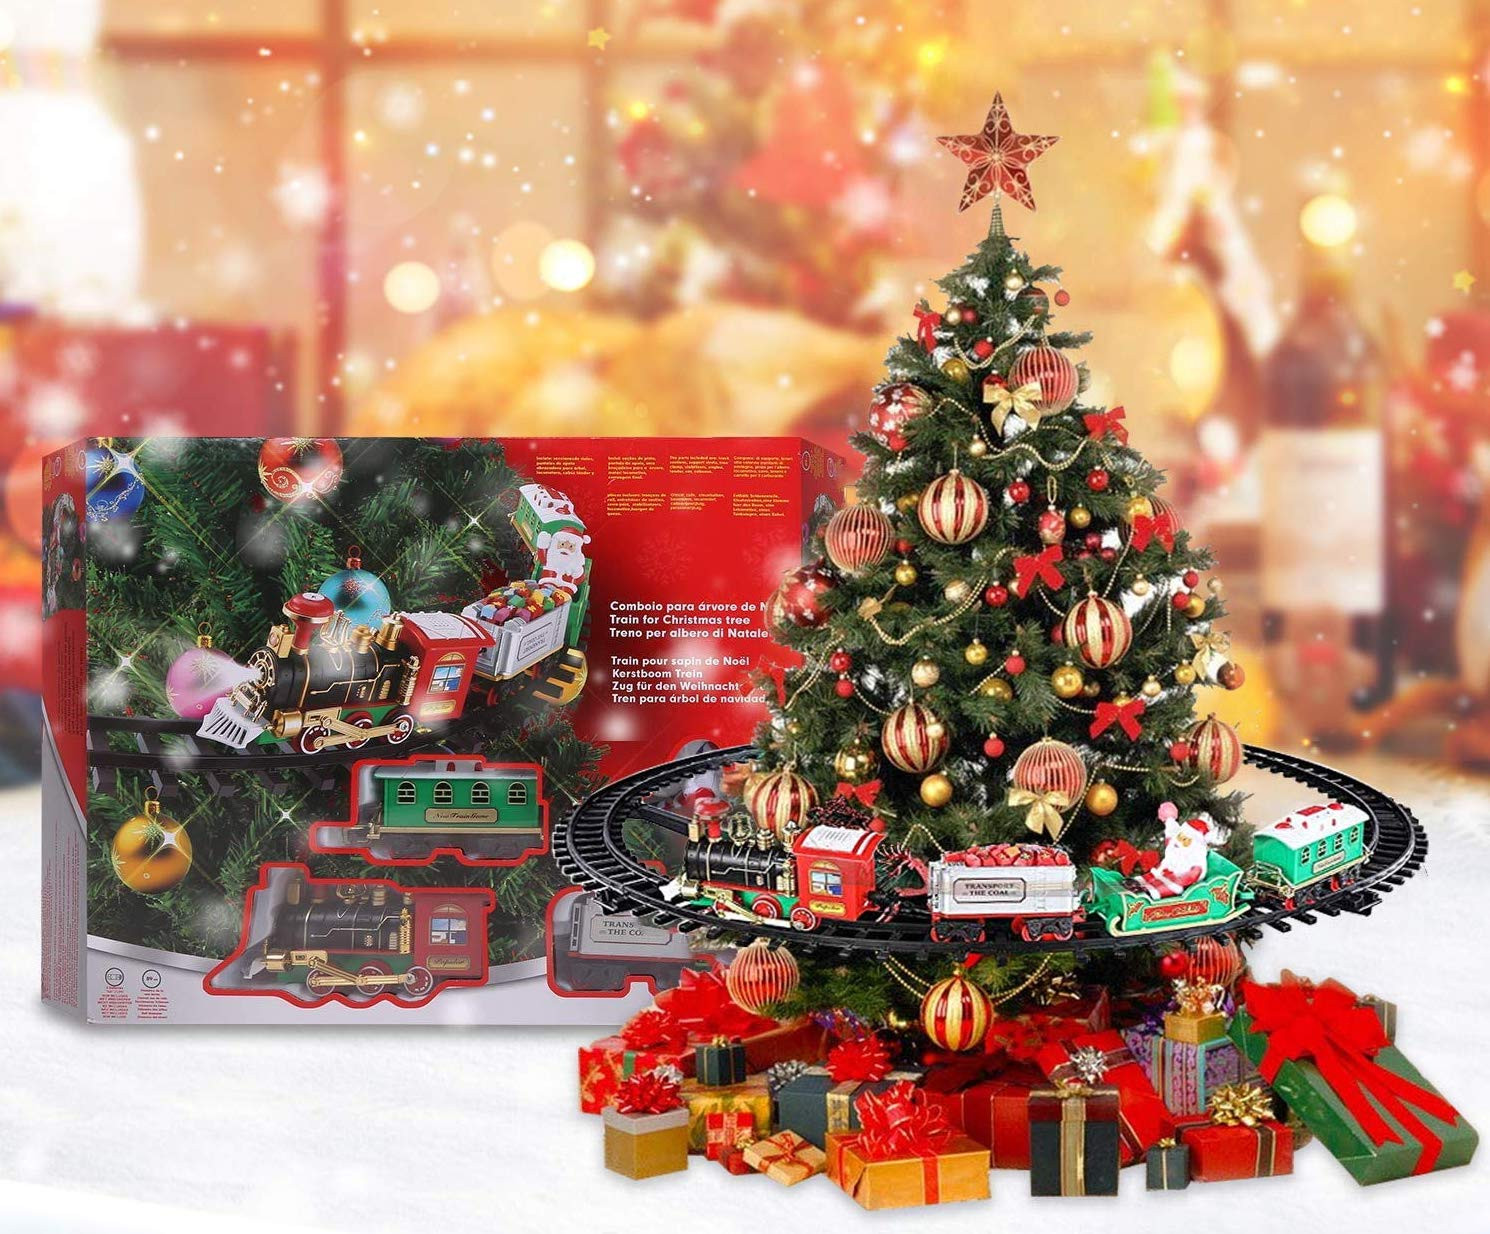 Best Xmas Gifts For Kids  Top 10 Best Christmas Gifts for Kids in 2020 Reviews